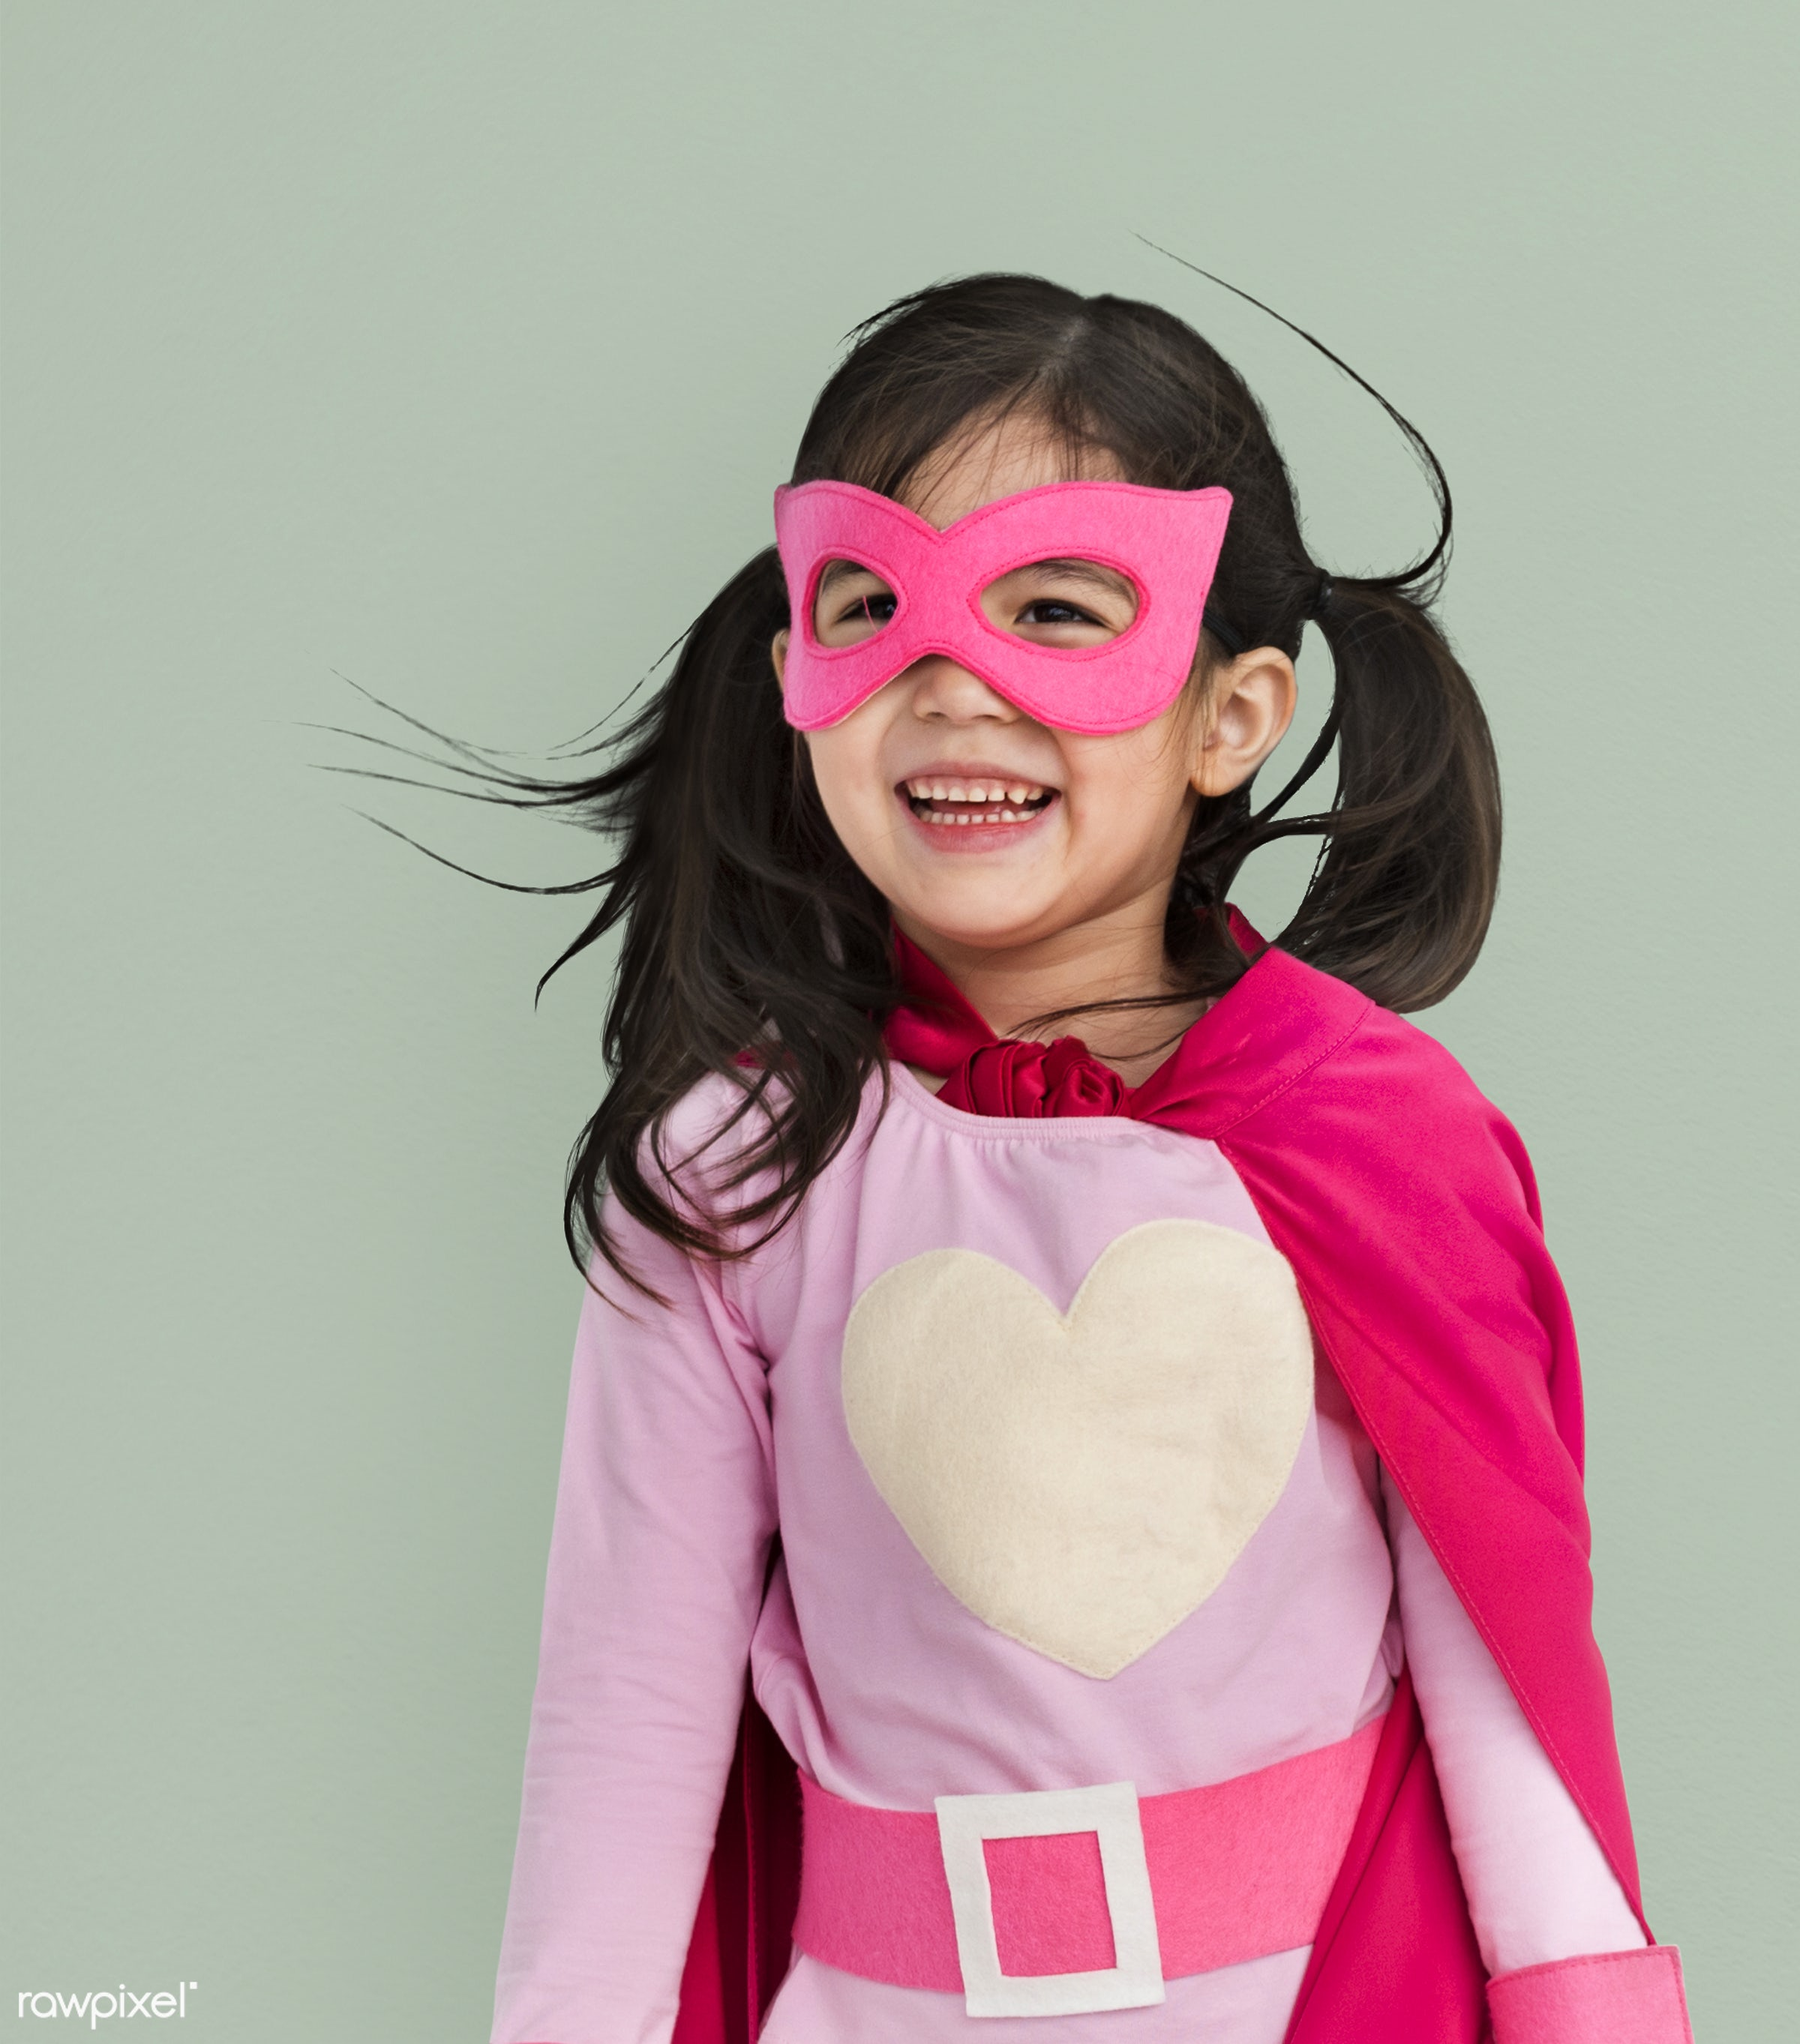 alone, cheerful, child, costume, girl, isolated, kid, mask, one, playful, smiling, superhero, young, youth